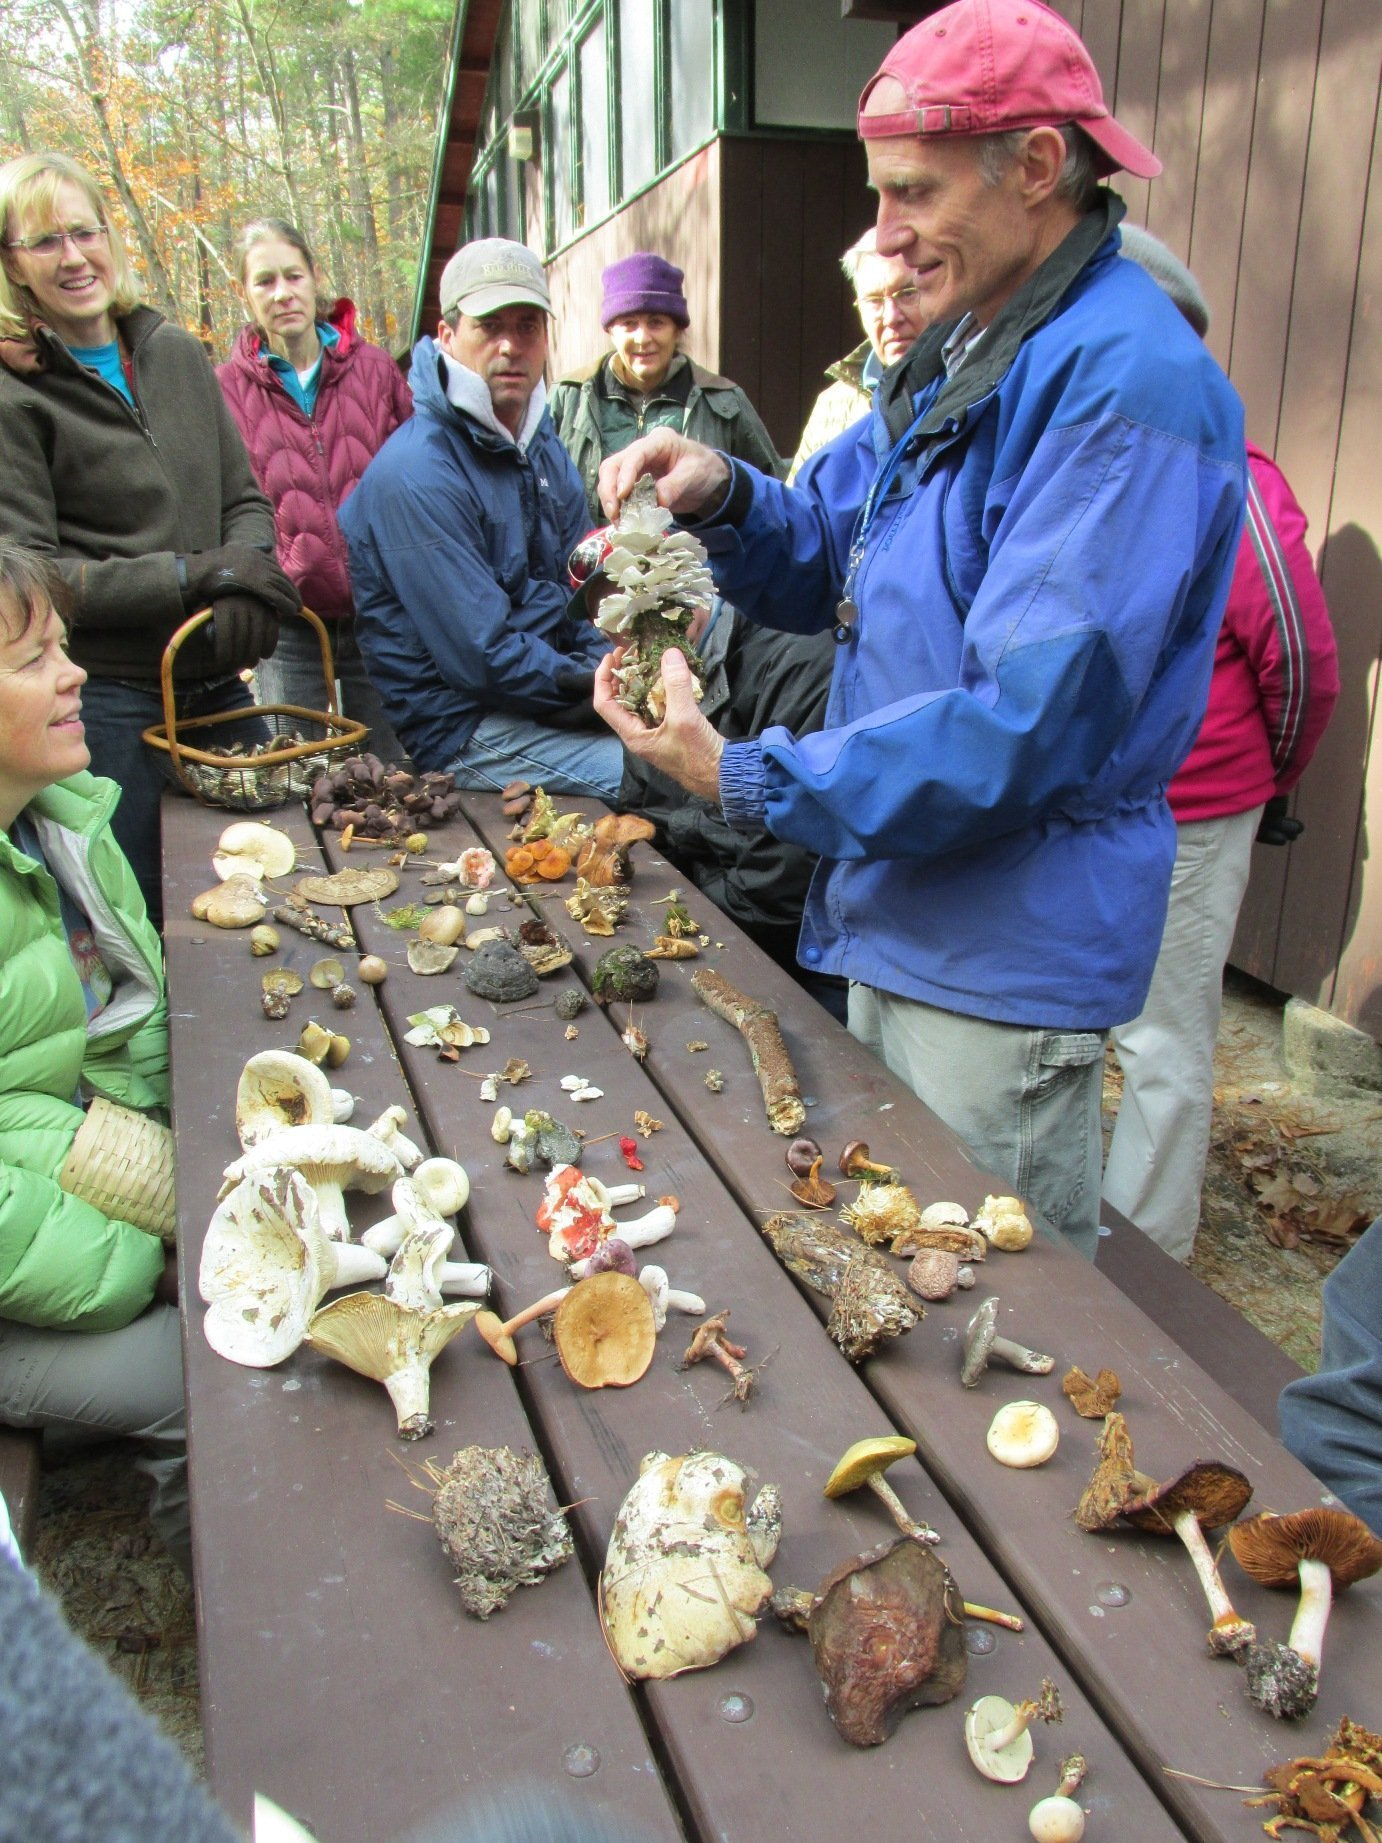 Annual Mushroom Program and Foray, Tin Mountain Conservation Center